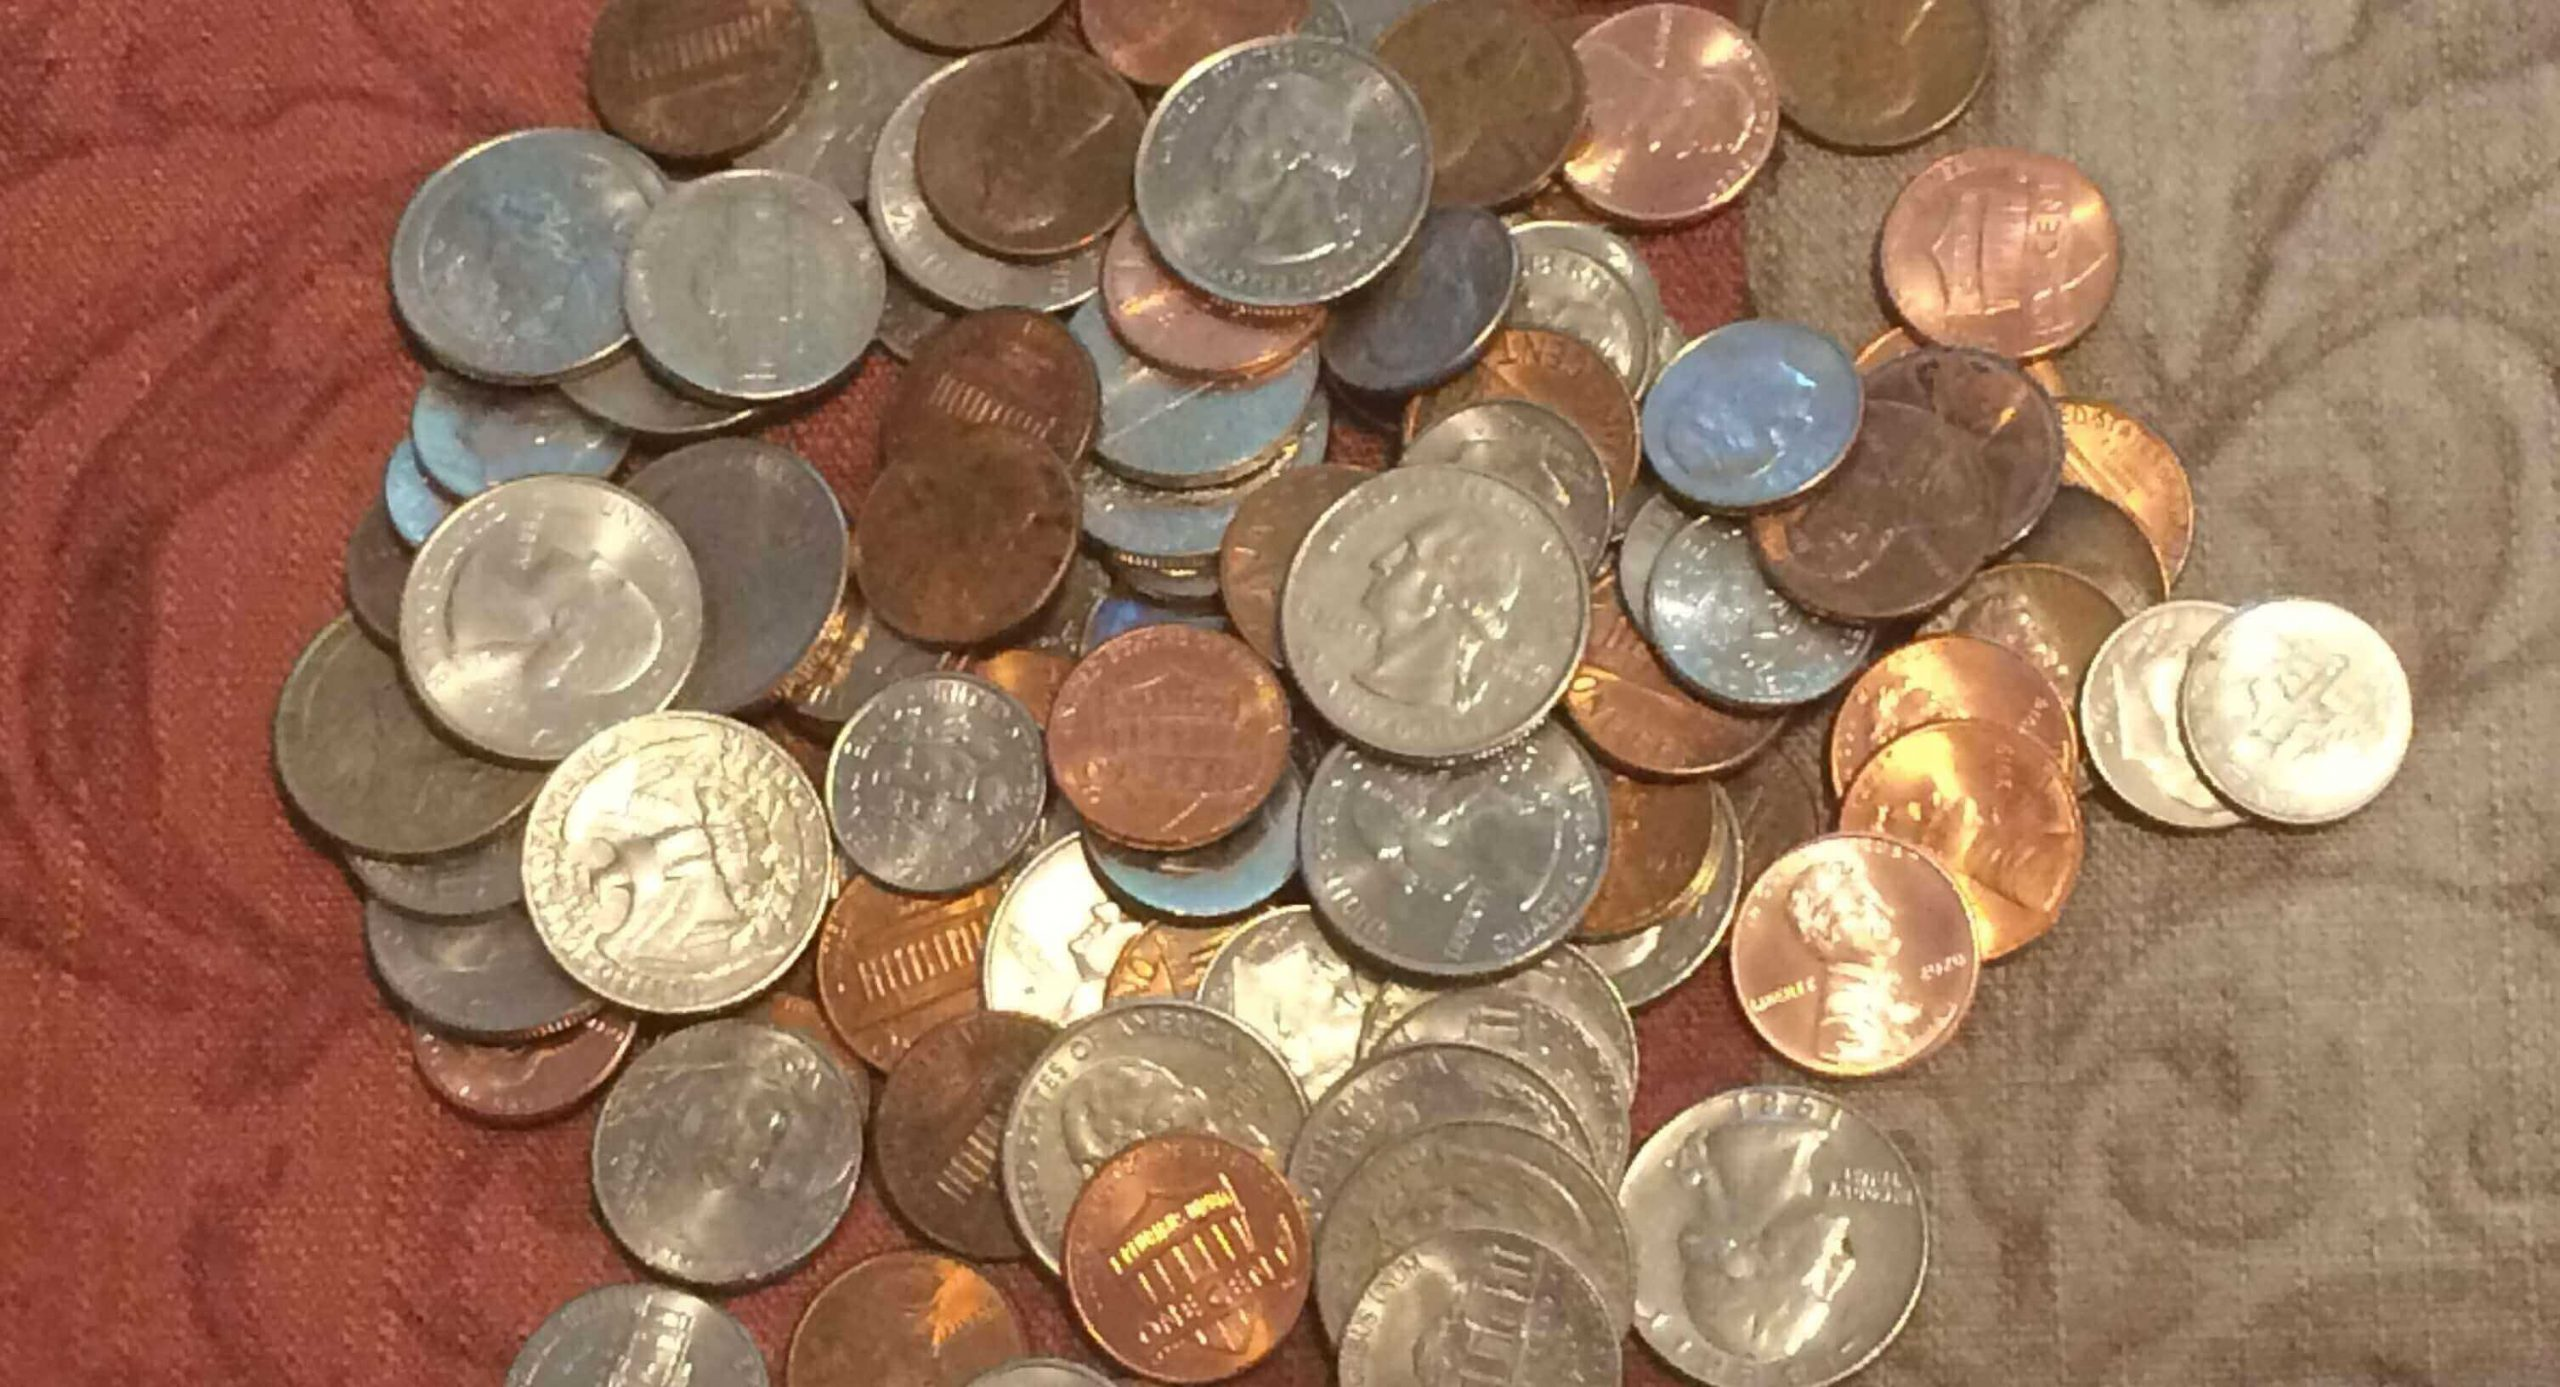 'Exact Change Only'. Local Businesses Struggle With Coin Shortage